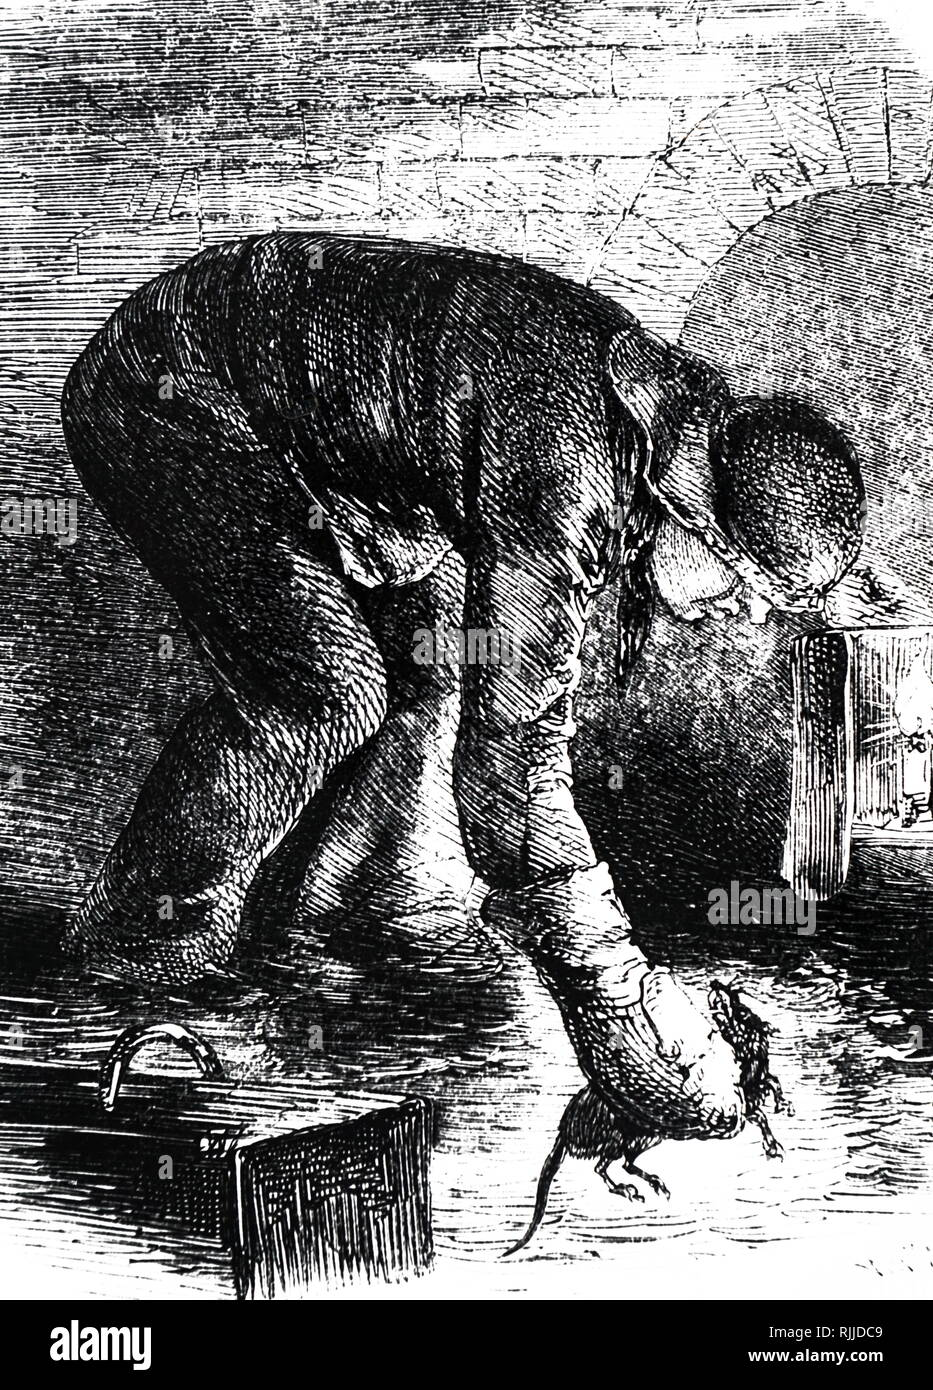 An engraving depicting a ratcatcher in a London sewer. One of the serious hazards of anyone working anywhere infested with rats is Weil's Disease. Dated 19th century - Stock Image